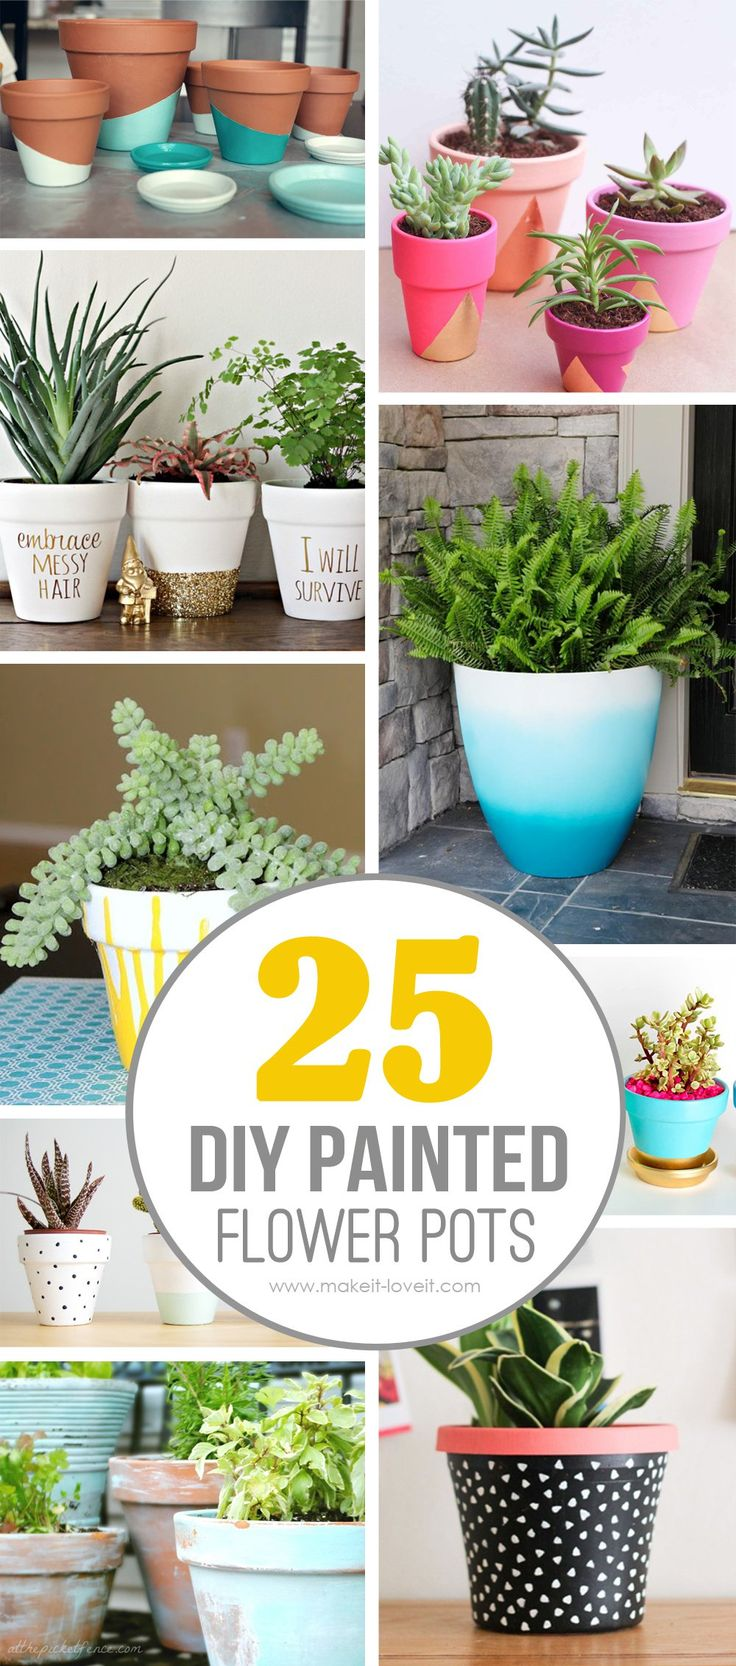 25 DIY Painted Flower Pot Ideas...you'll LOVE. Such a fun way to brighten up your home and outside curb appeal!